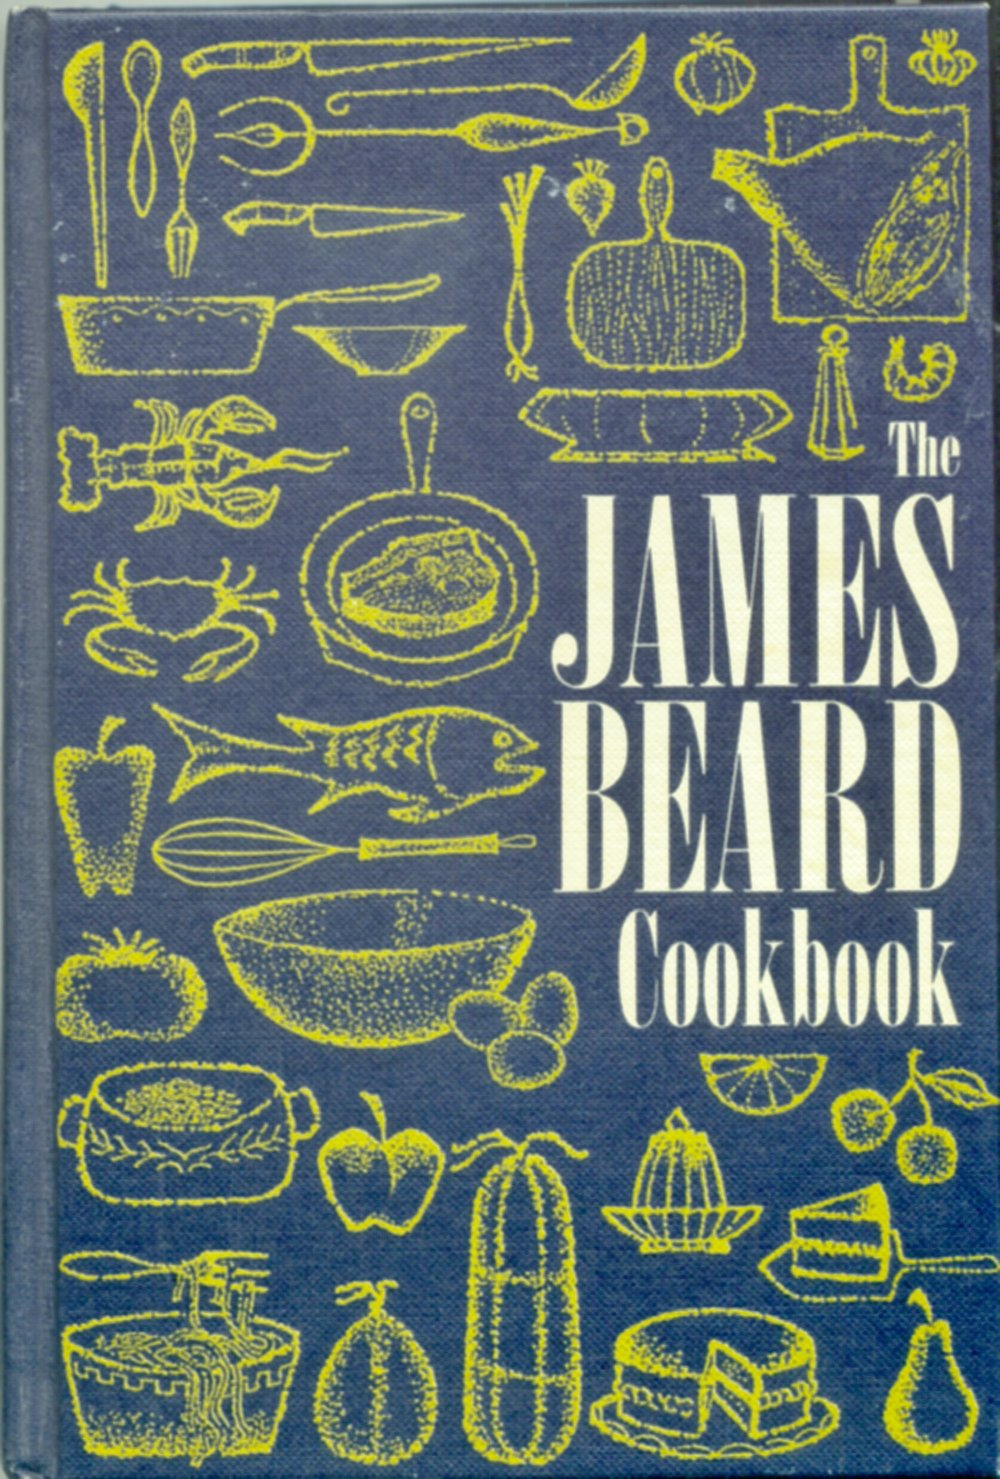 The cover of my James Beard Cookbook without its dust jacket